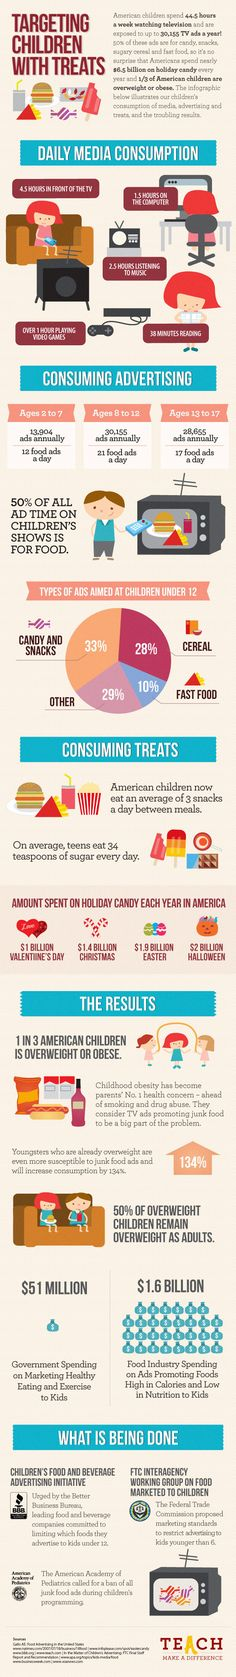 media, advertising and treats = childhood obesity